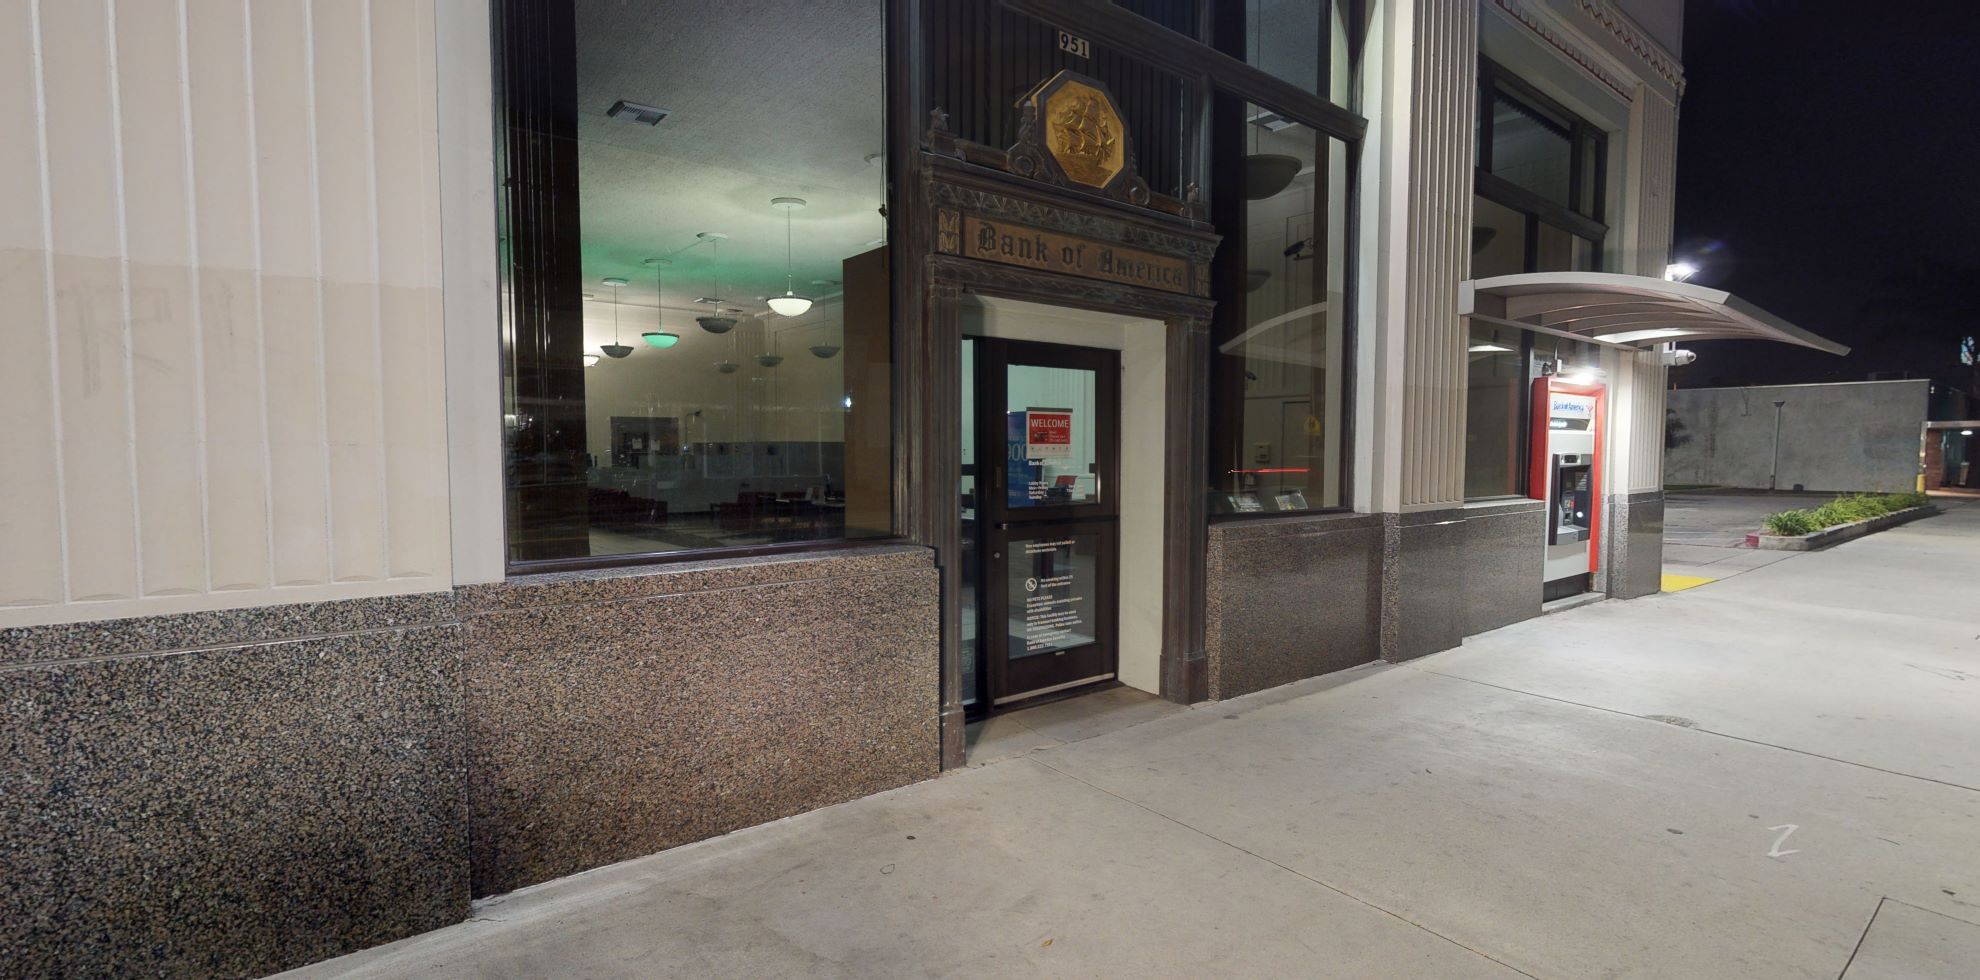 Bank of America financial center with walk-up ATM | 951 S Pacific Ave, San Pedro, CA 90731